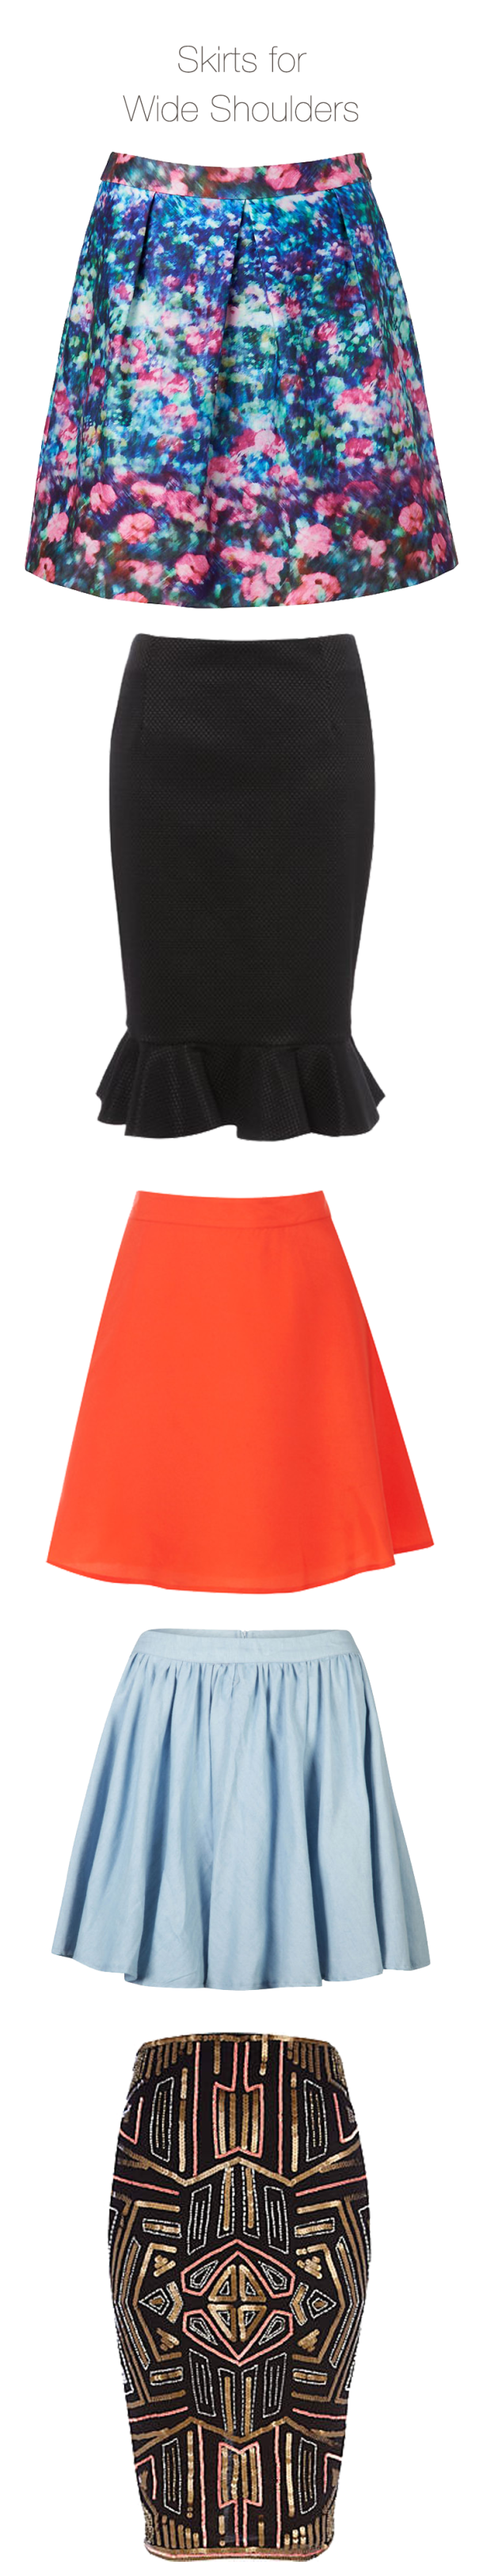 skirts-for-wide-shoulders